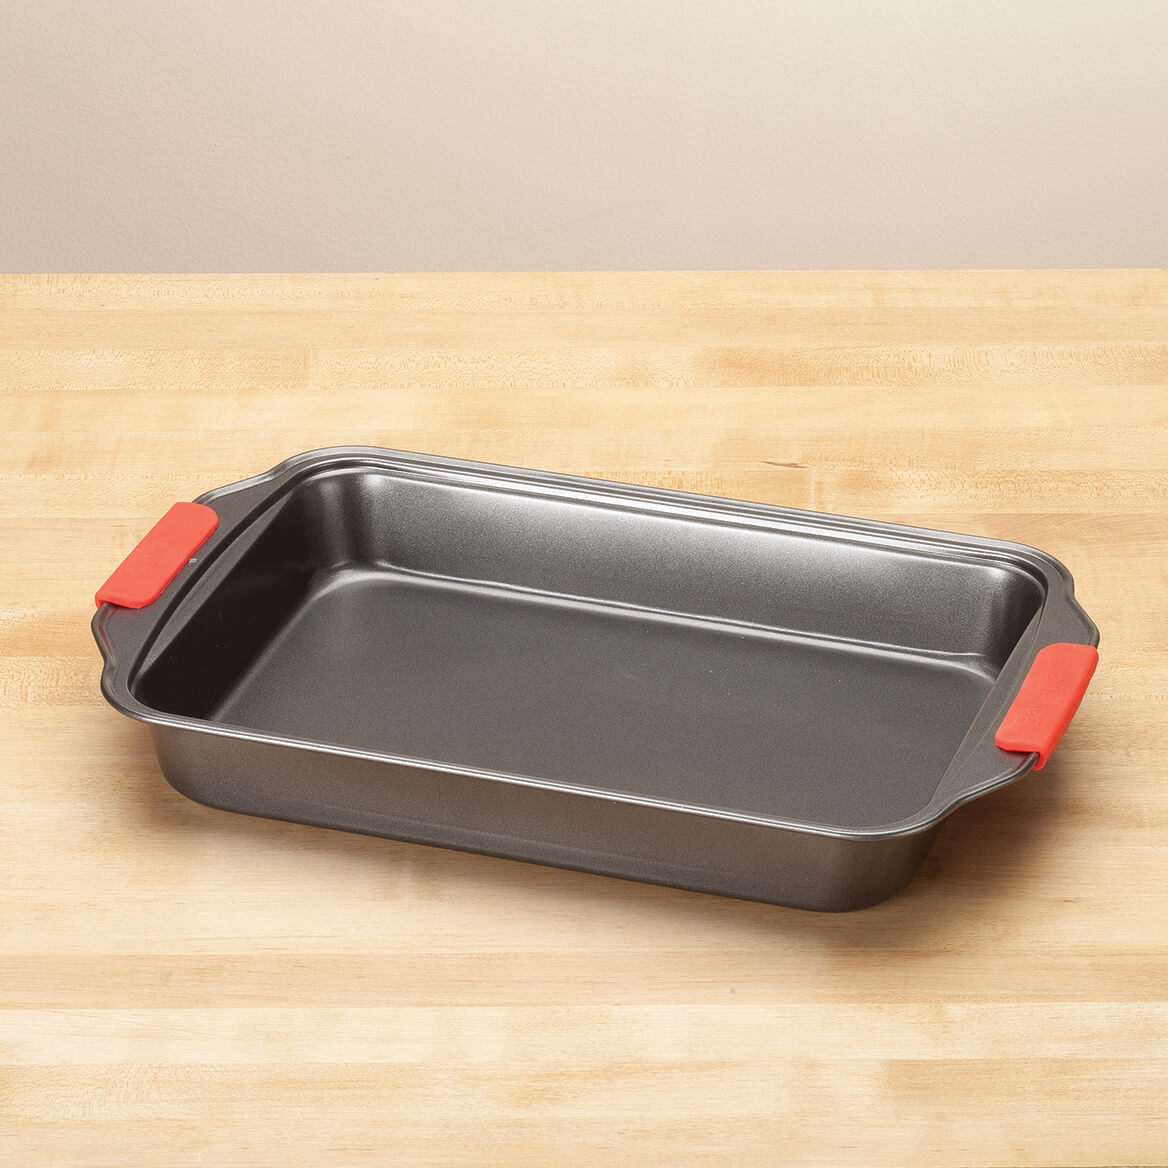 Bakeware Starter 3-Pc. Set by Home-Style Kitchen™-367152